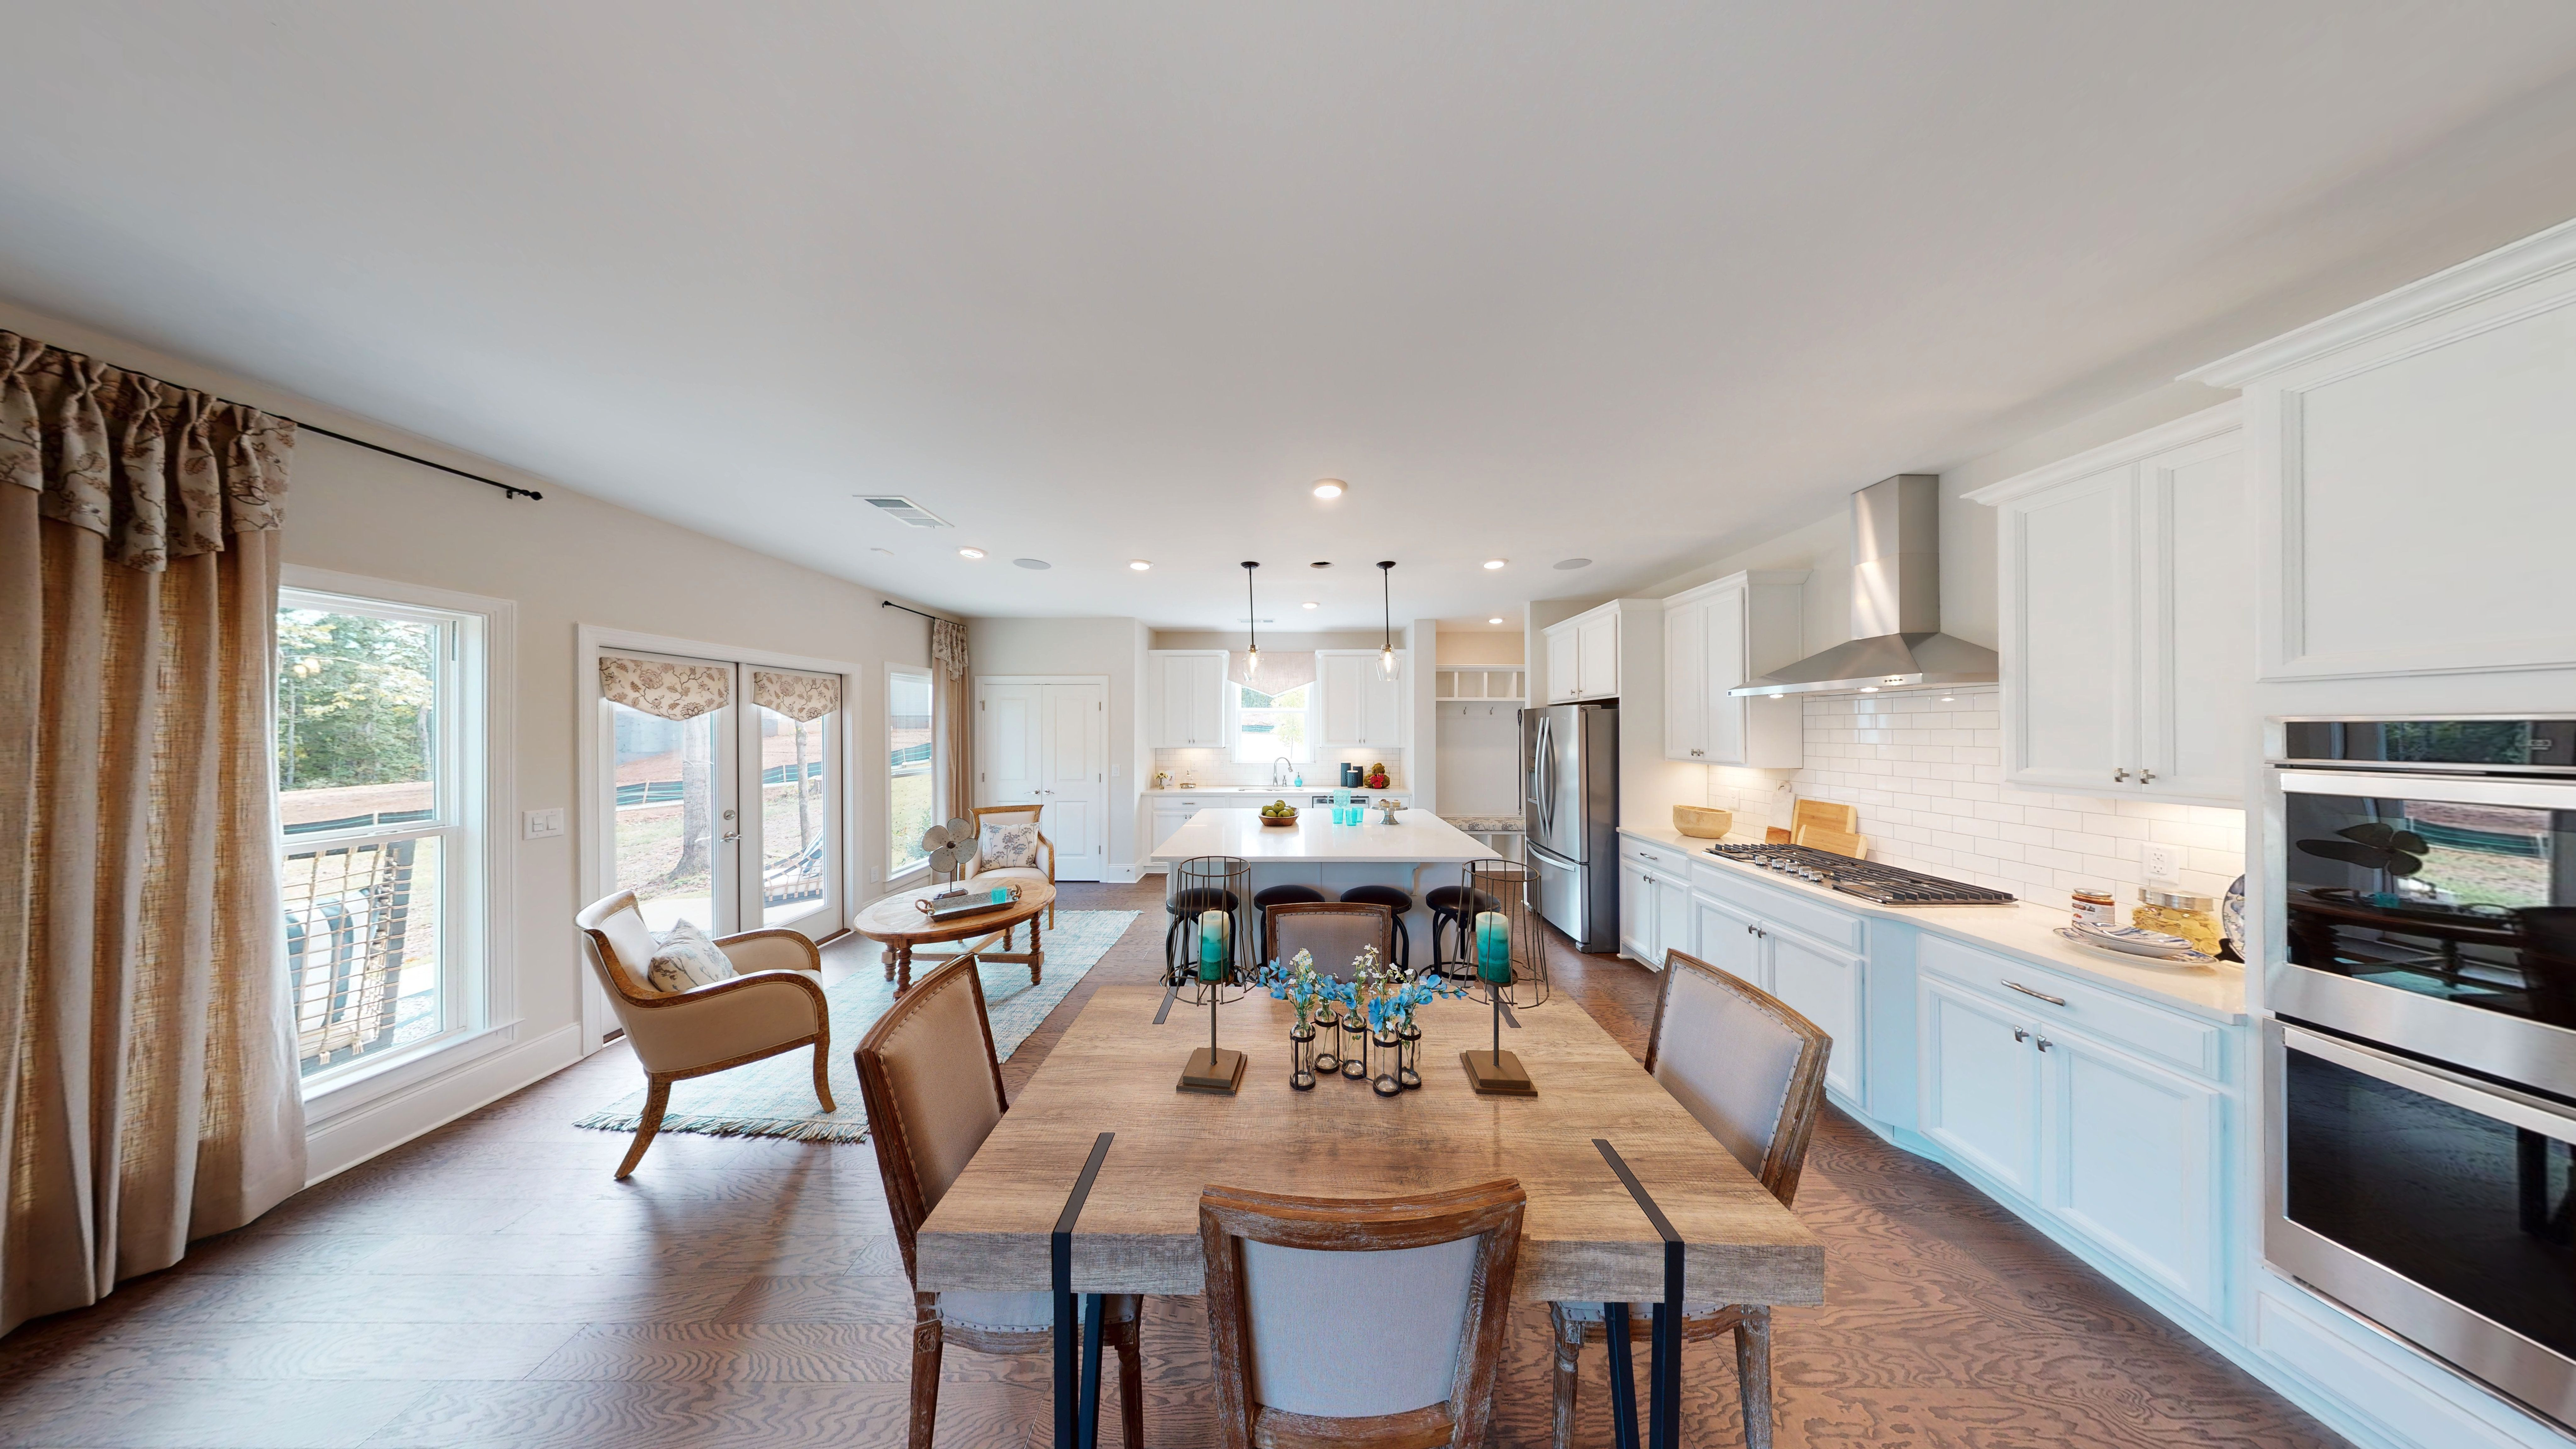 Living Area featured in The Westport By O'Dwyer Homes in Atlanta, GA